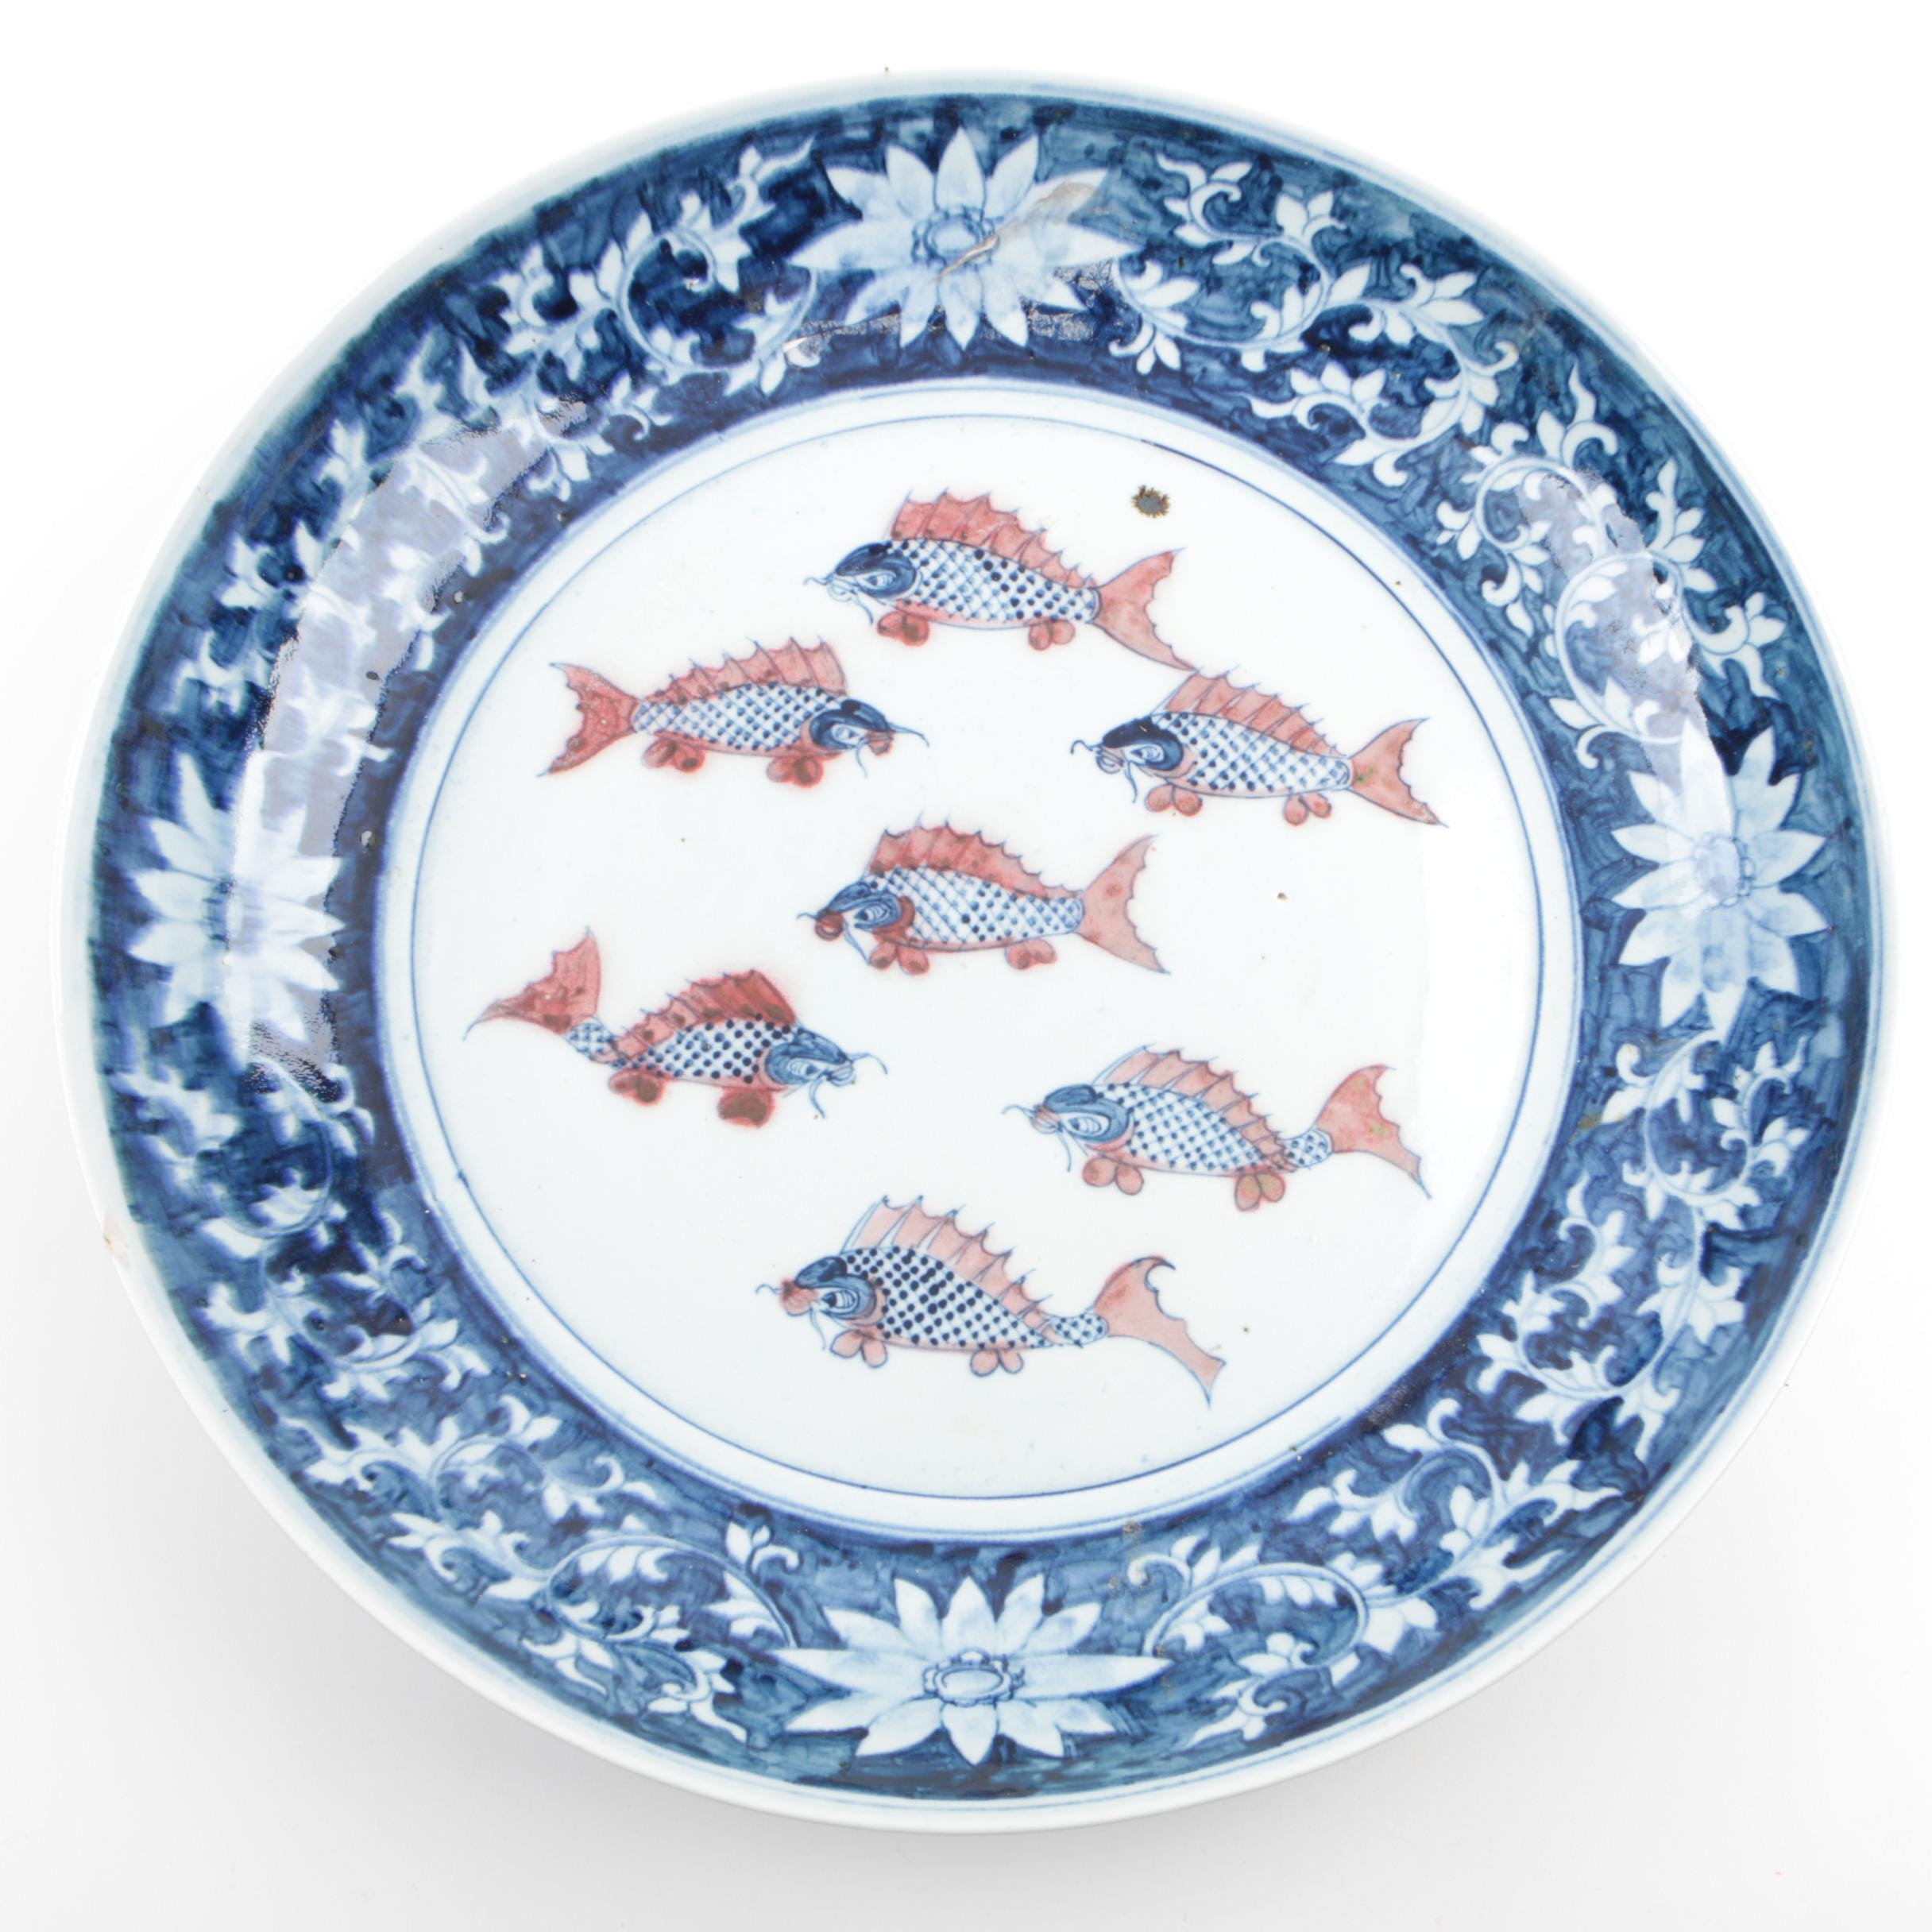 Japanese Hand Painted Porcelain Charger